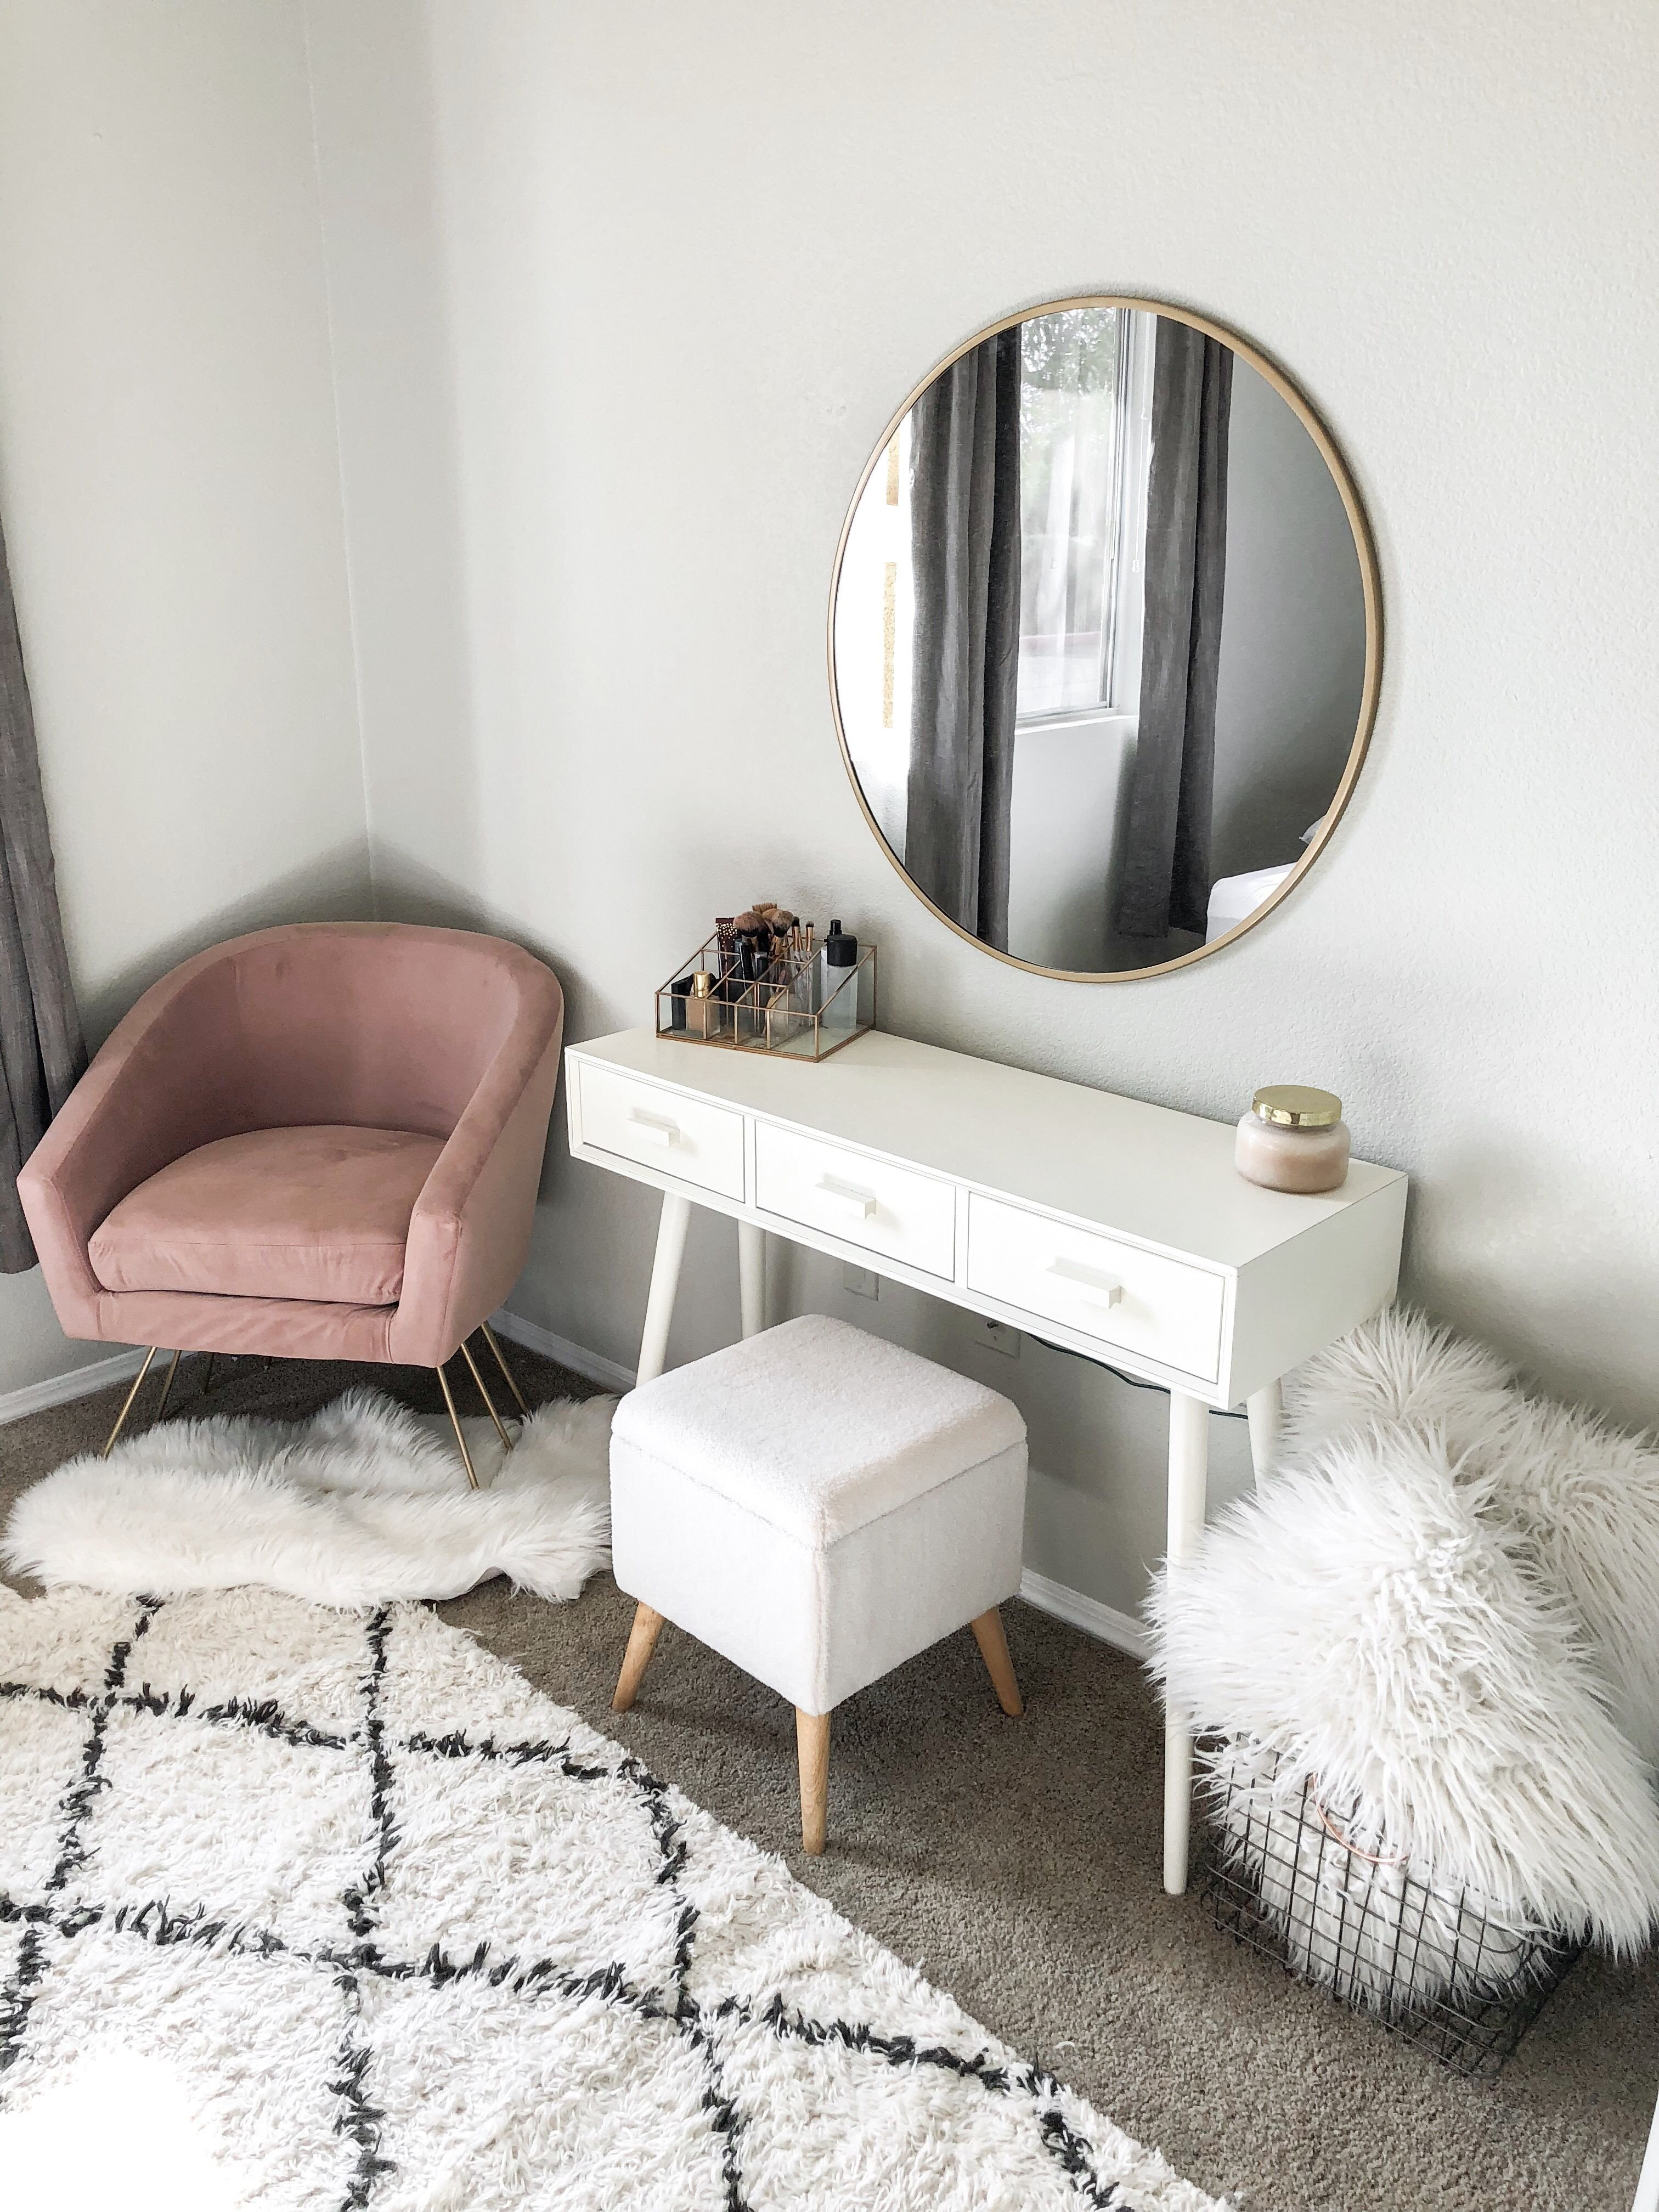 Chair for Small Bedroom Unique Go to E Yersavage for More Like This In 2019